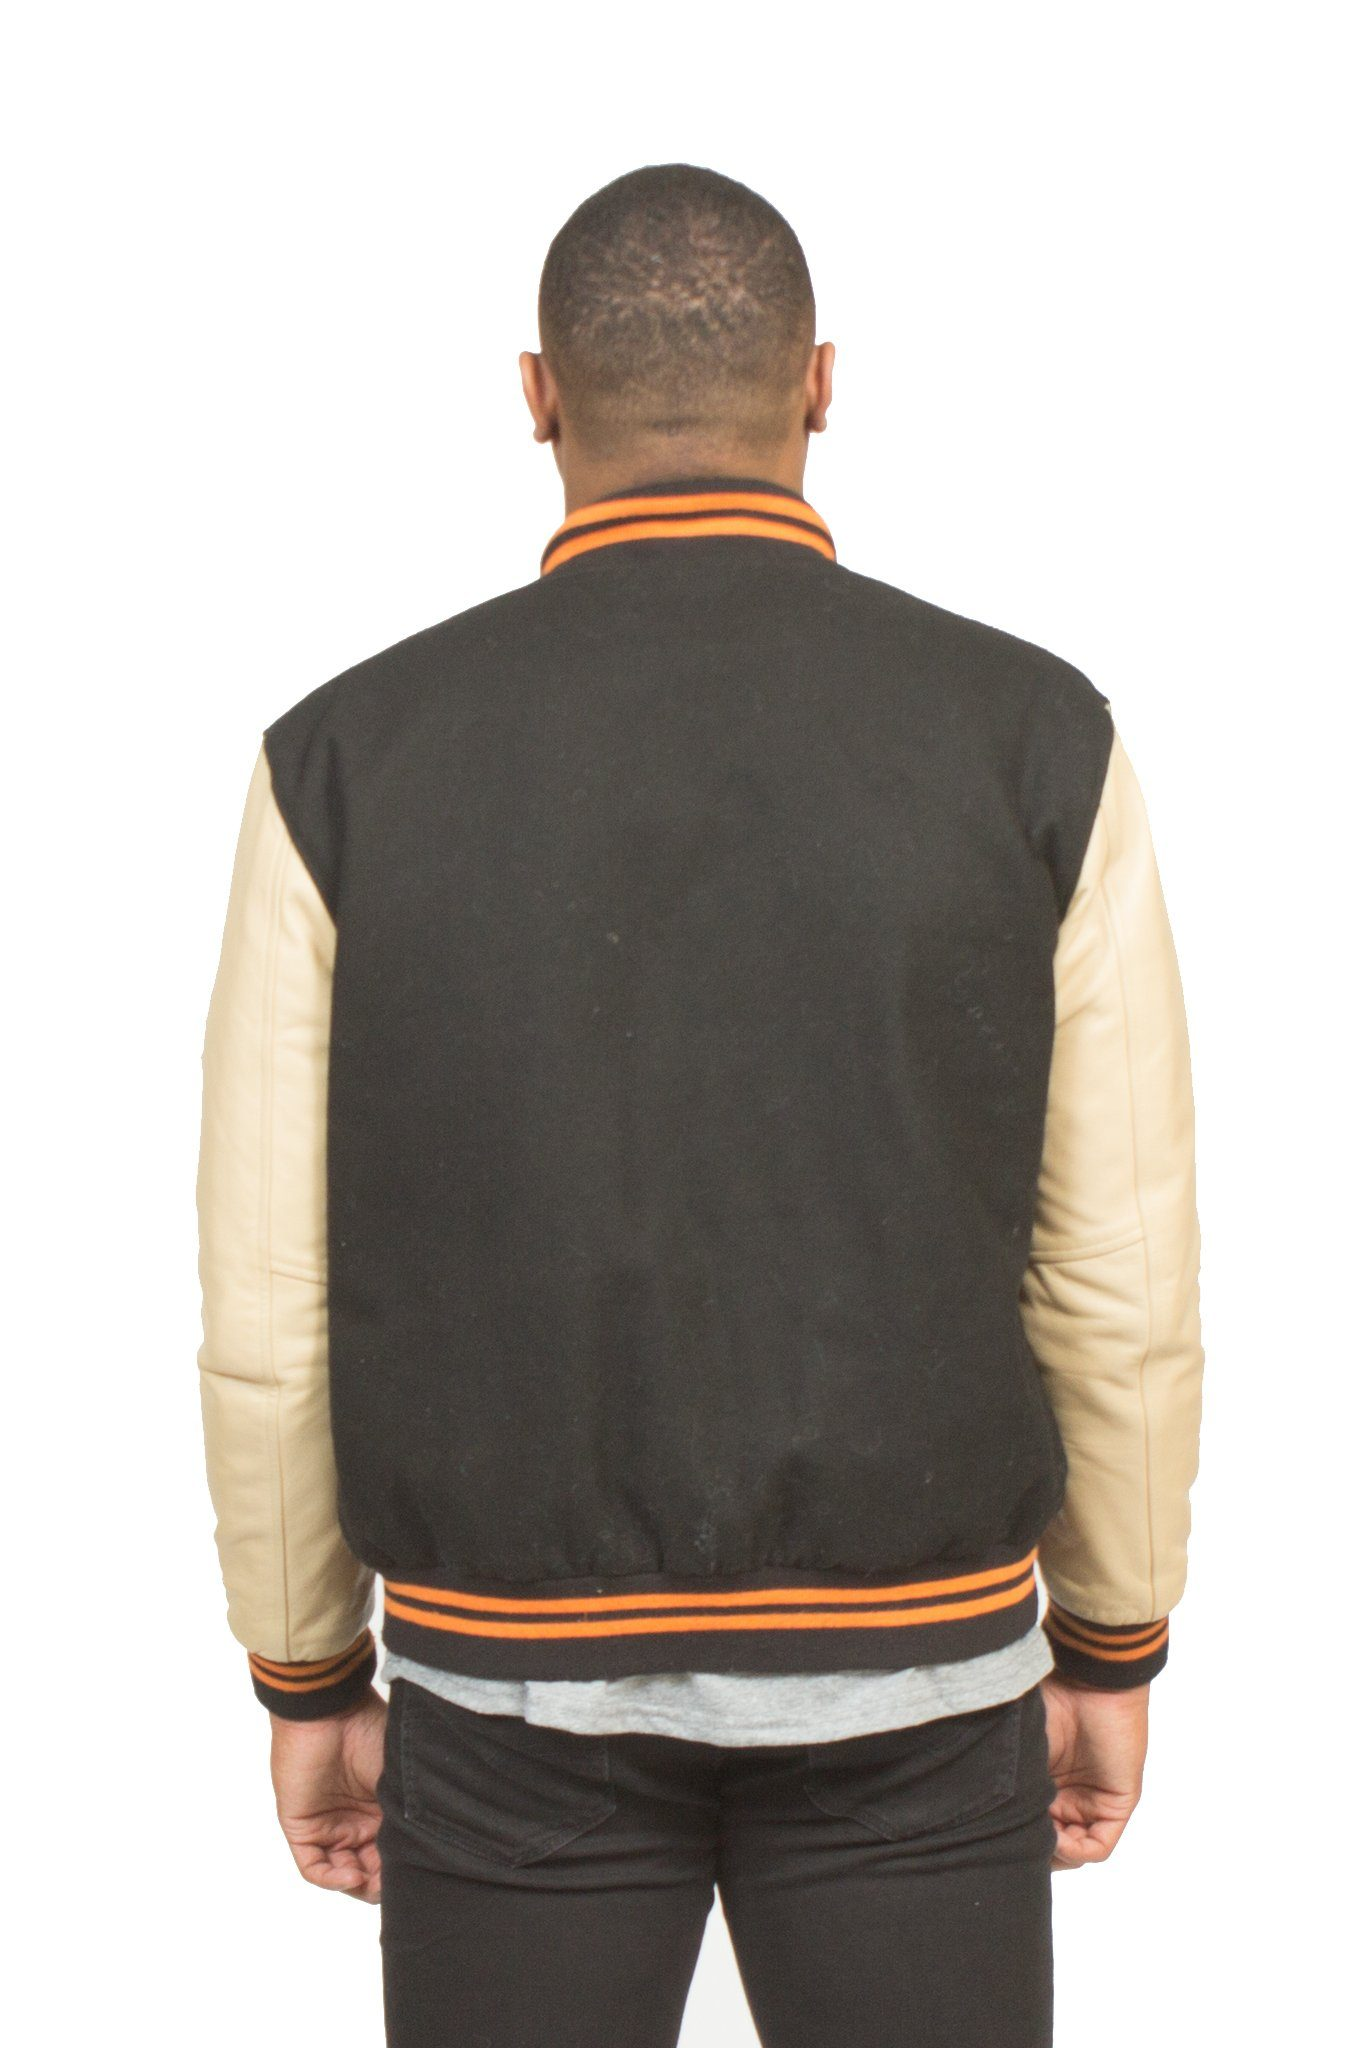 ALL CITY VARSITY JACKET IN BLACK | Poor Little Rich Boy Clothing